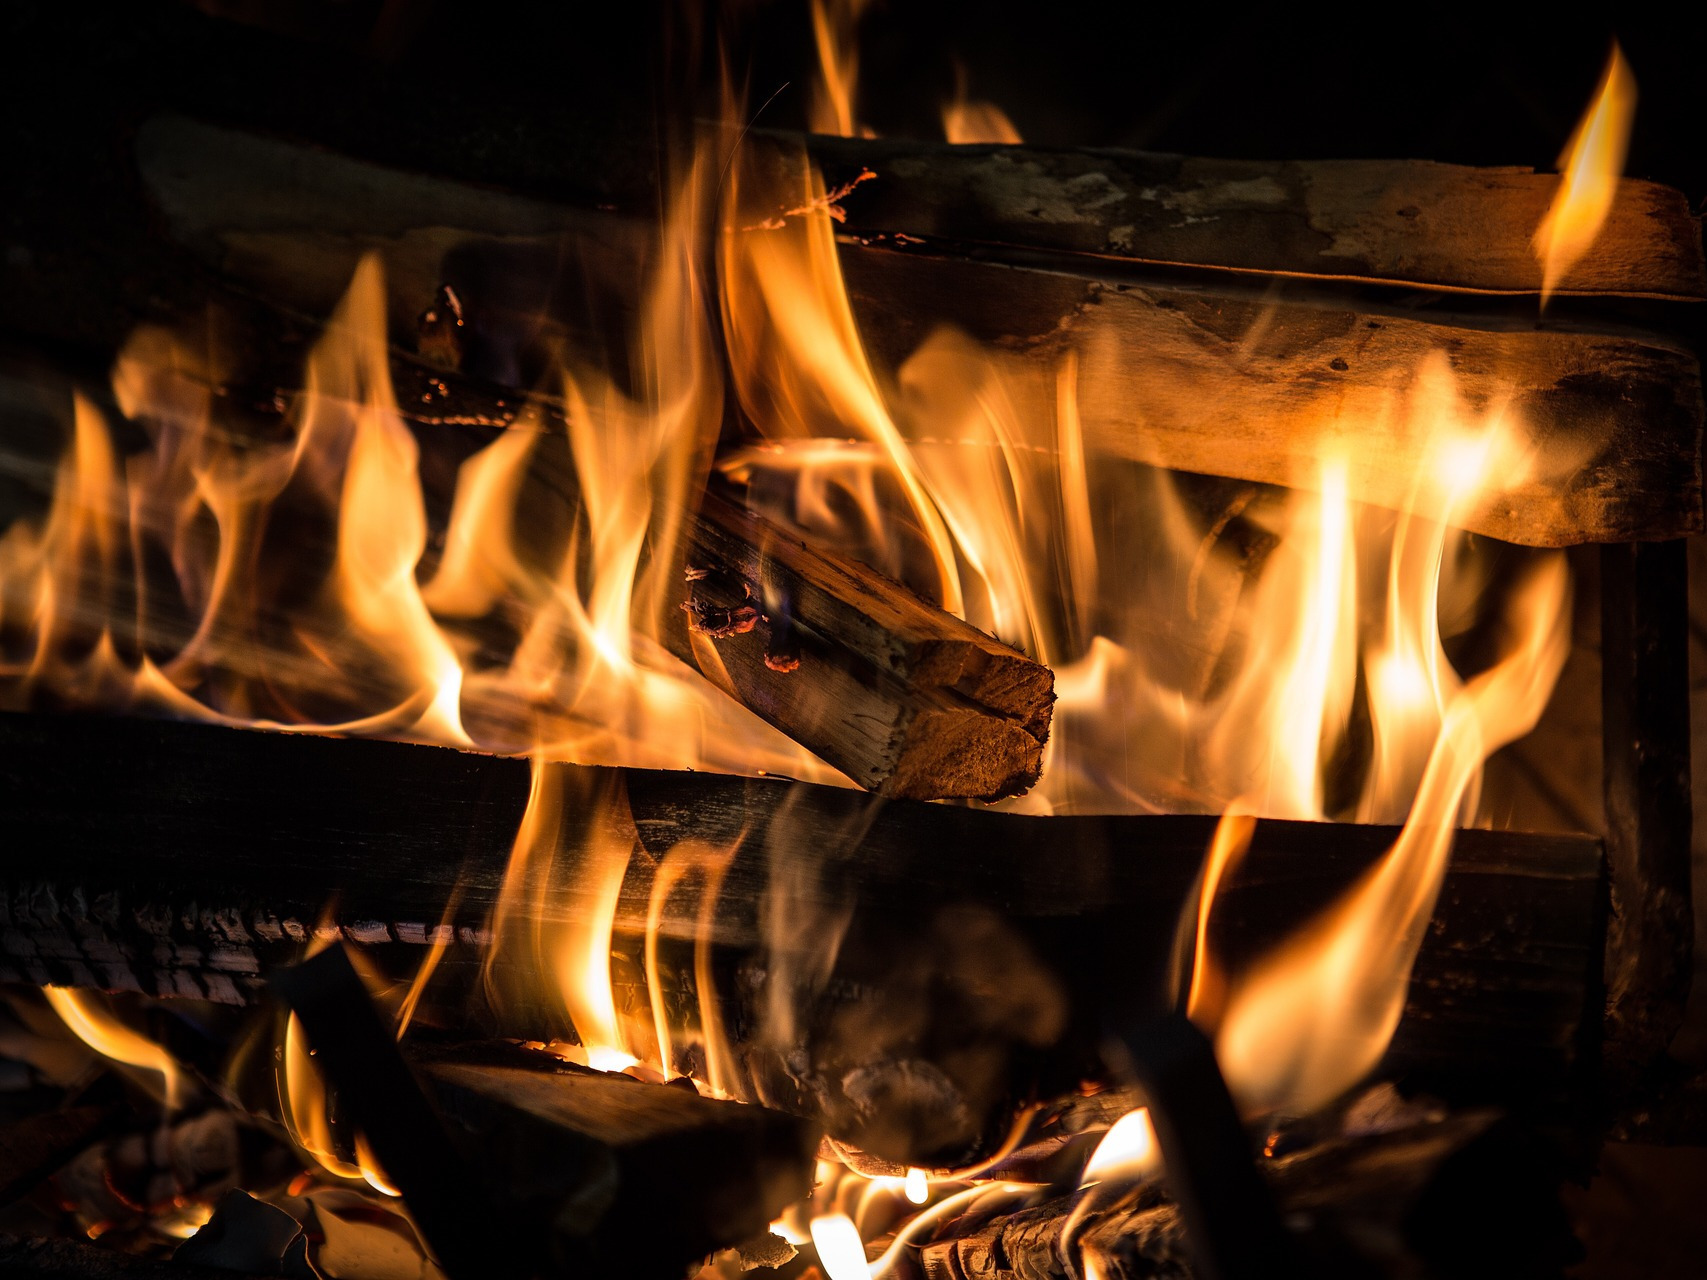 The best restaurants with fireplaces in Boston